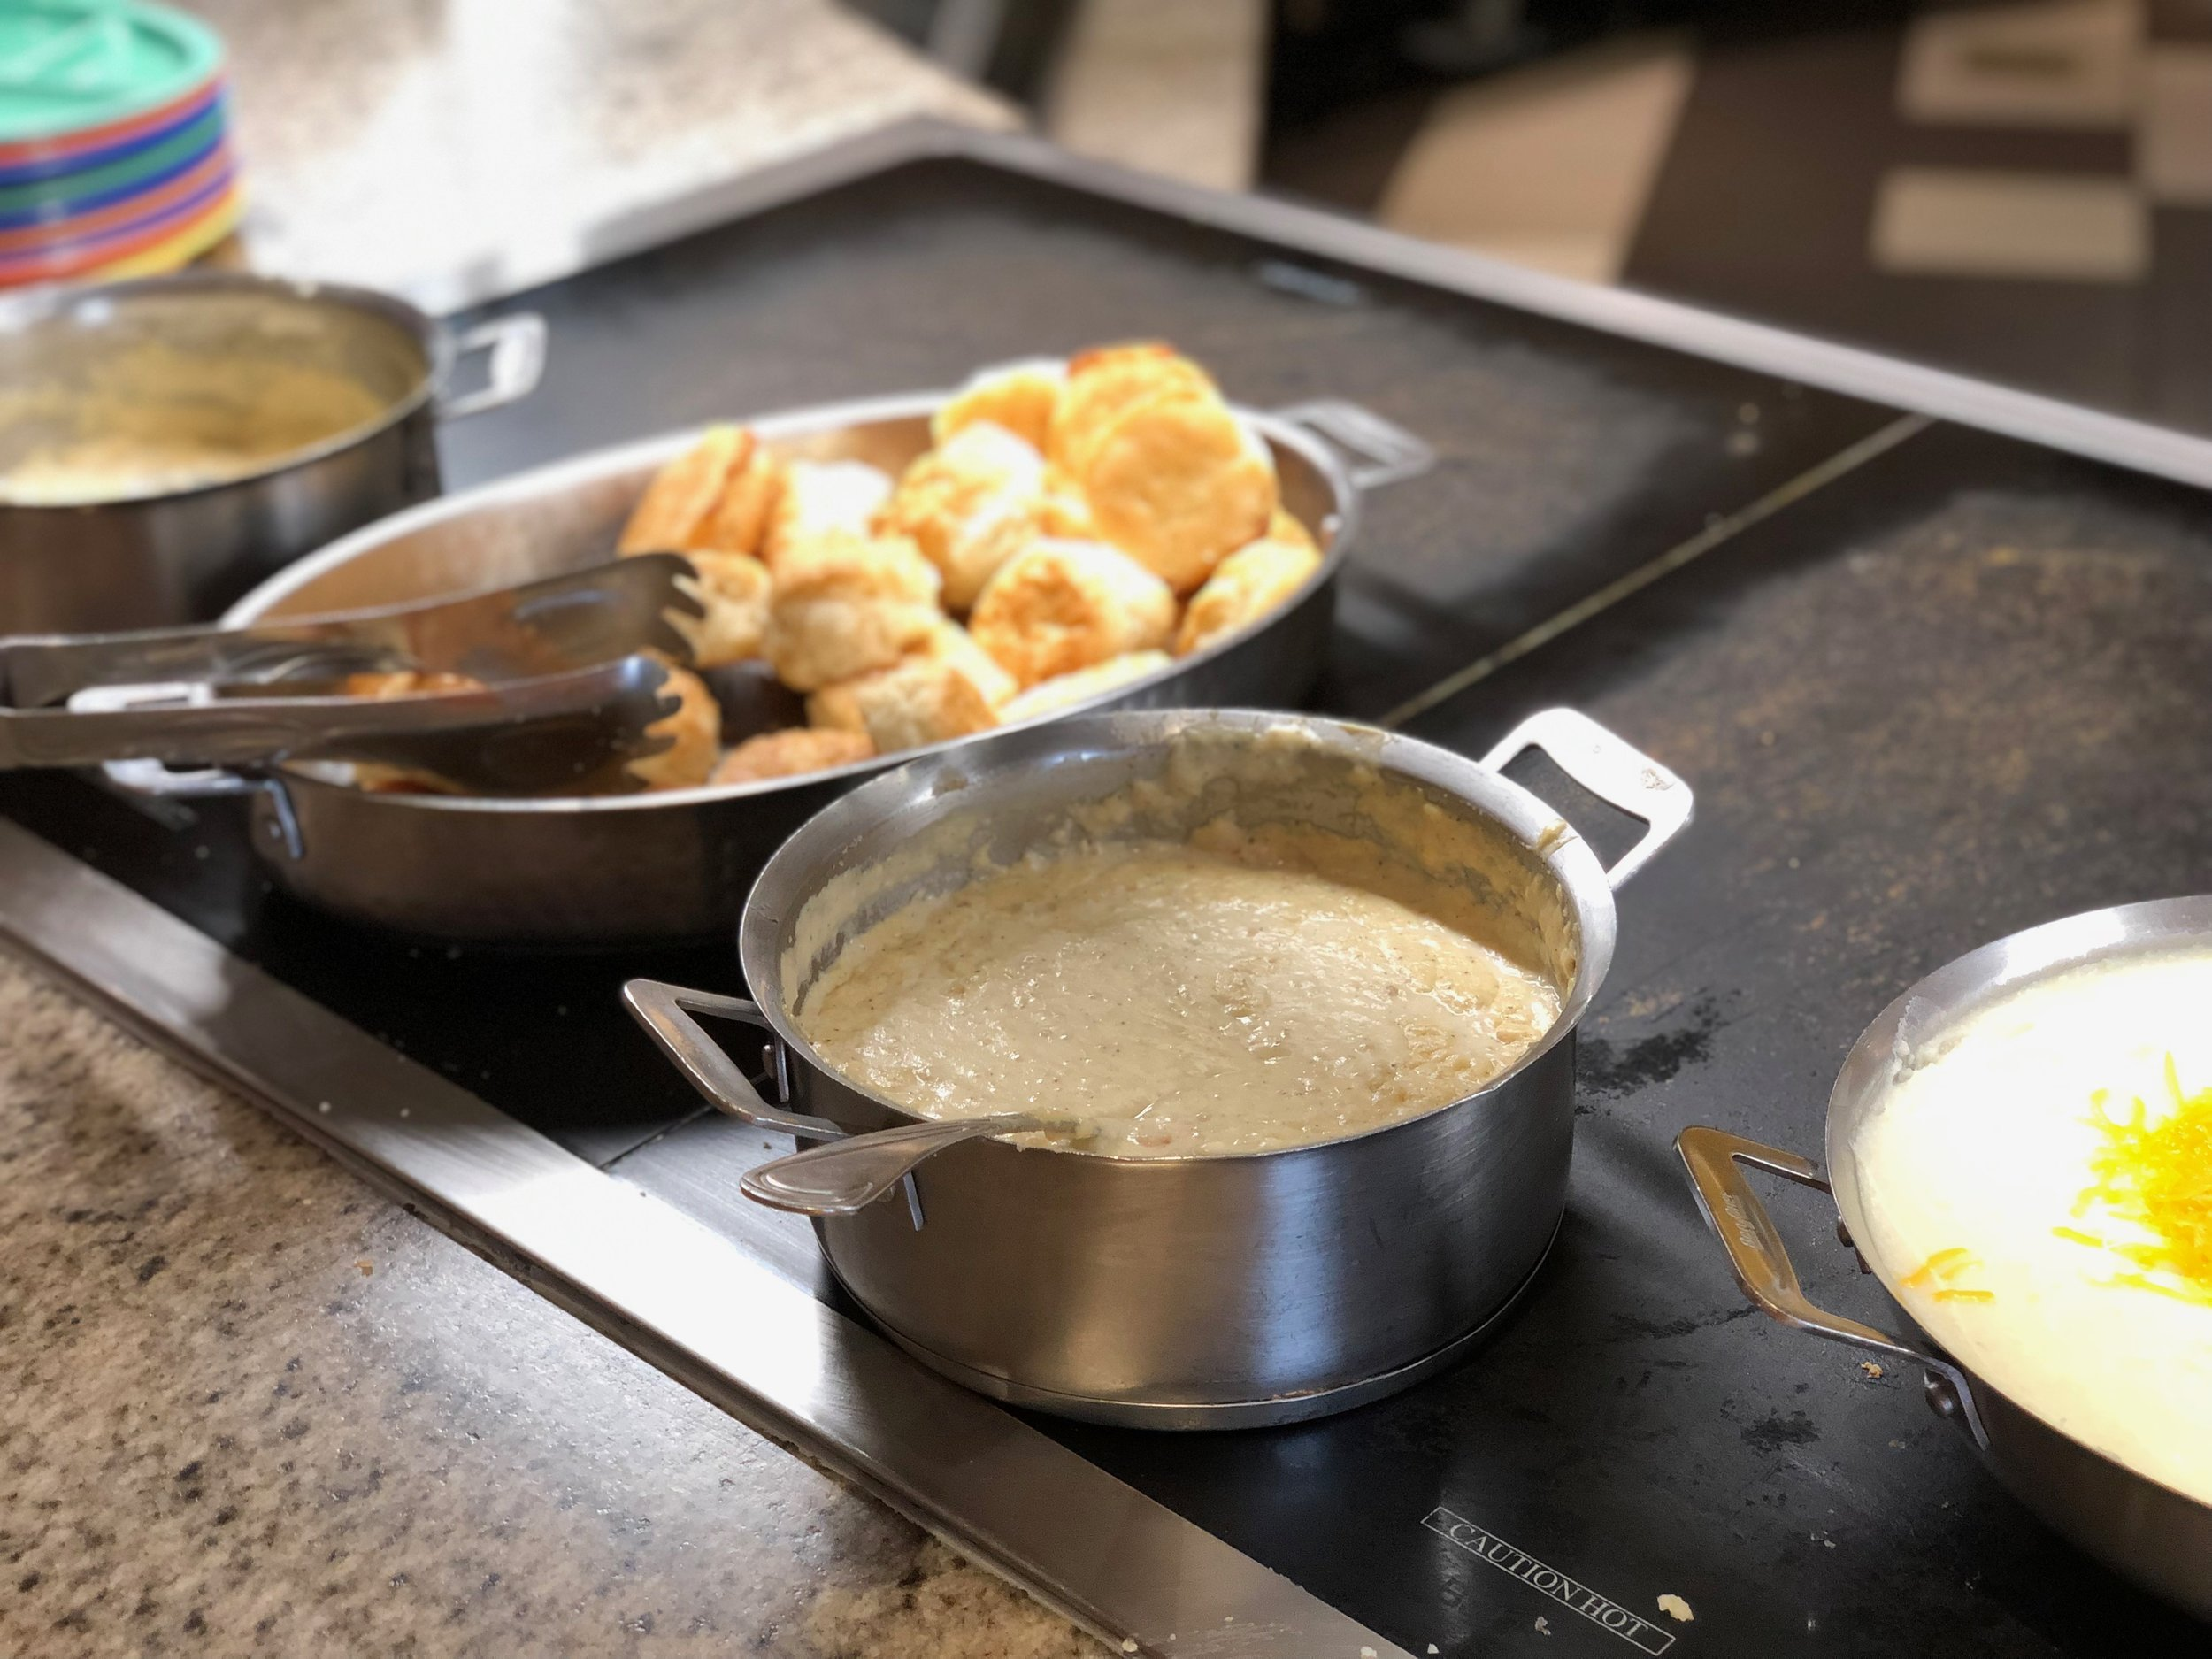 Biscuits and Gravy - Chef Mickey's